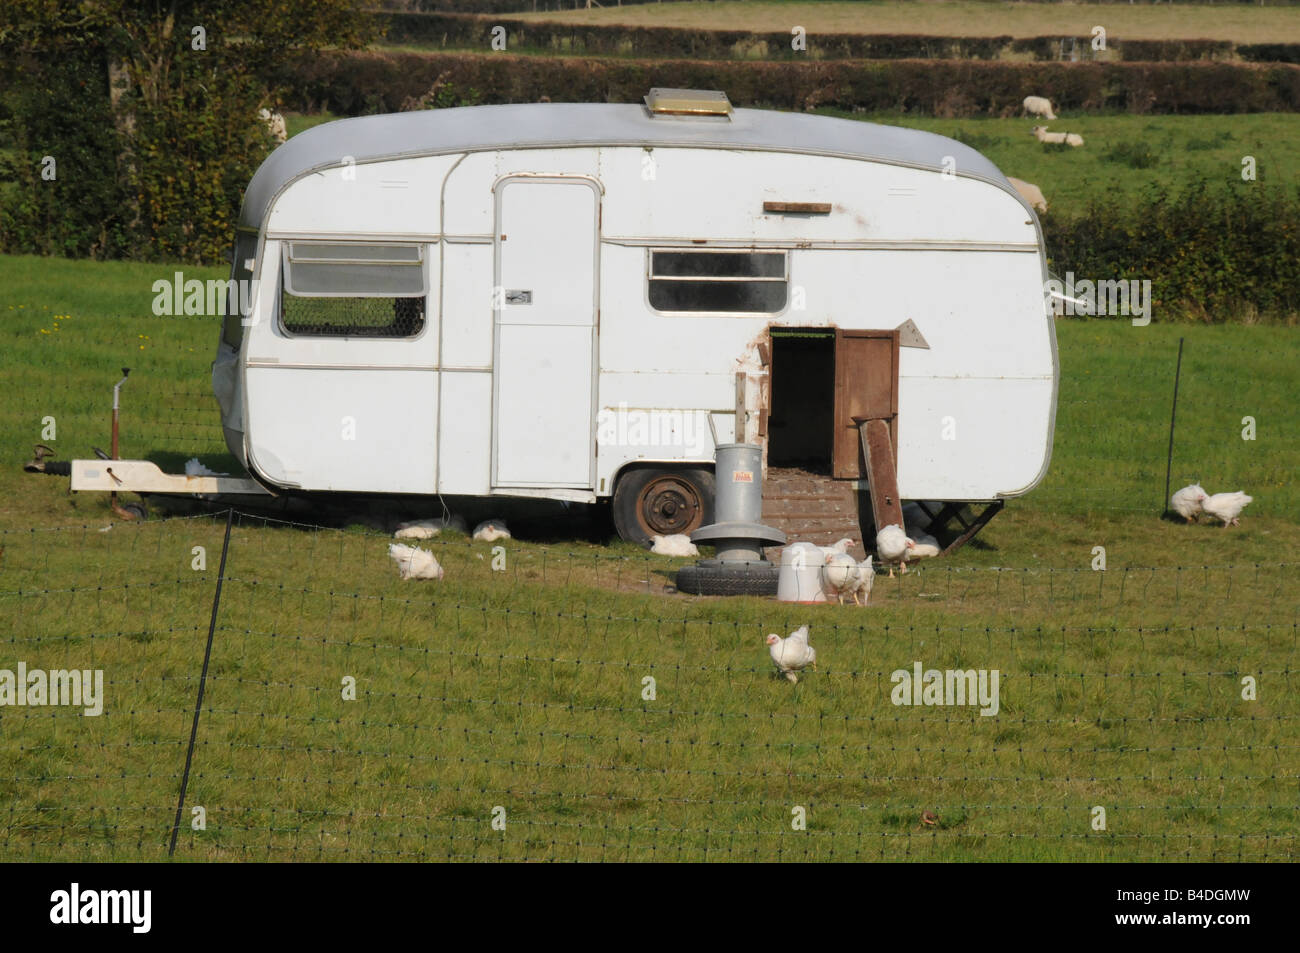 An Old Caravan Now Put To Use As A Hen House For Free